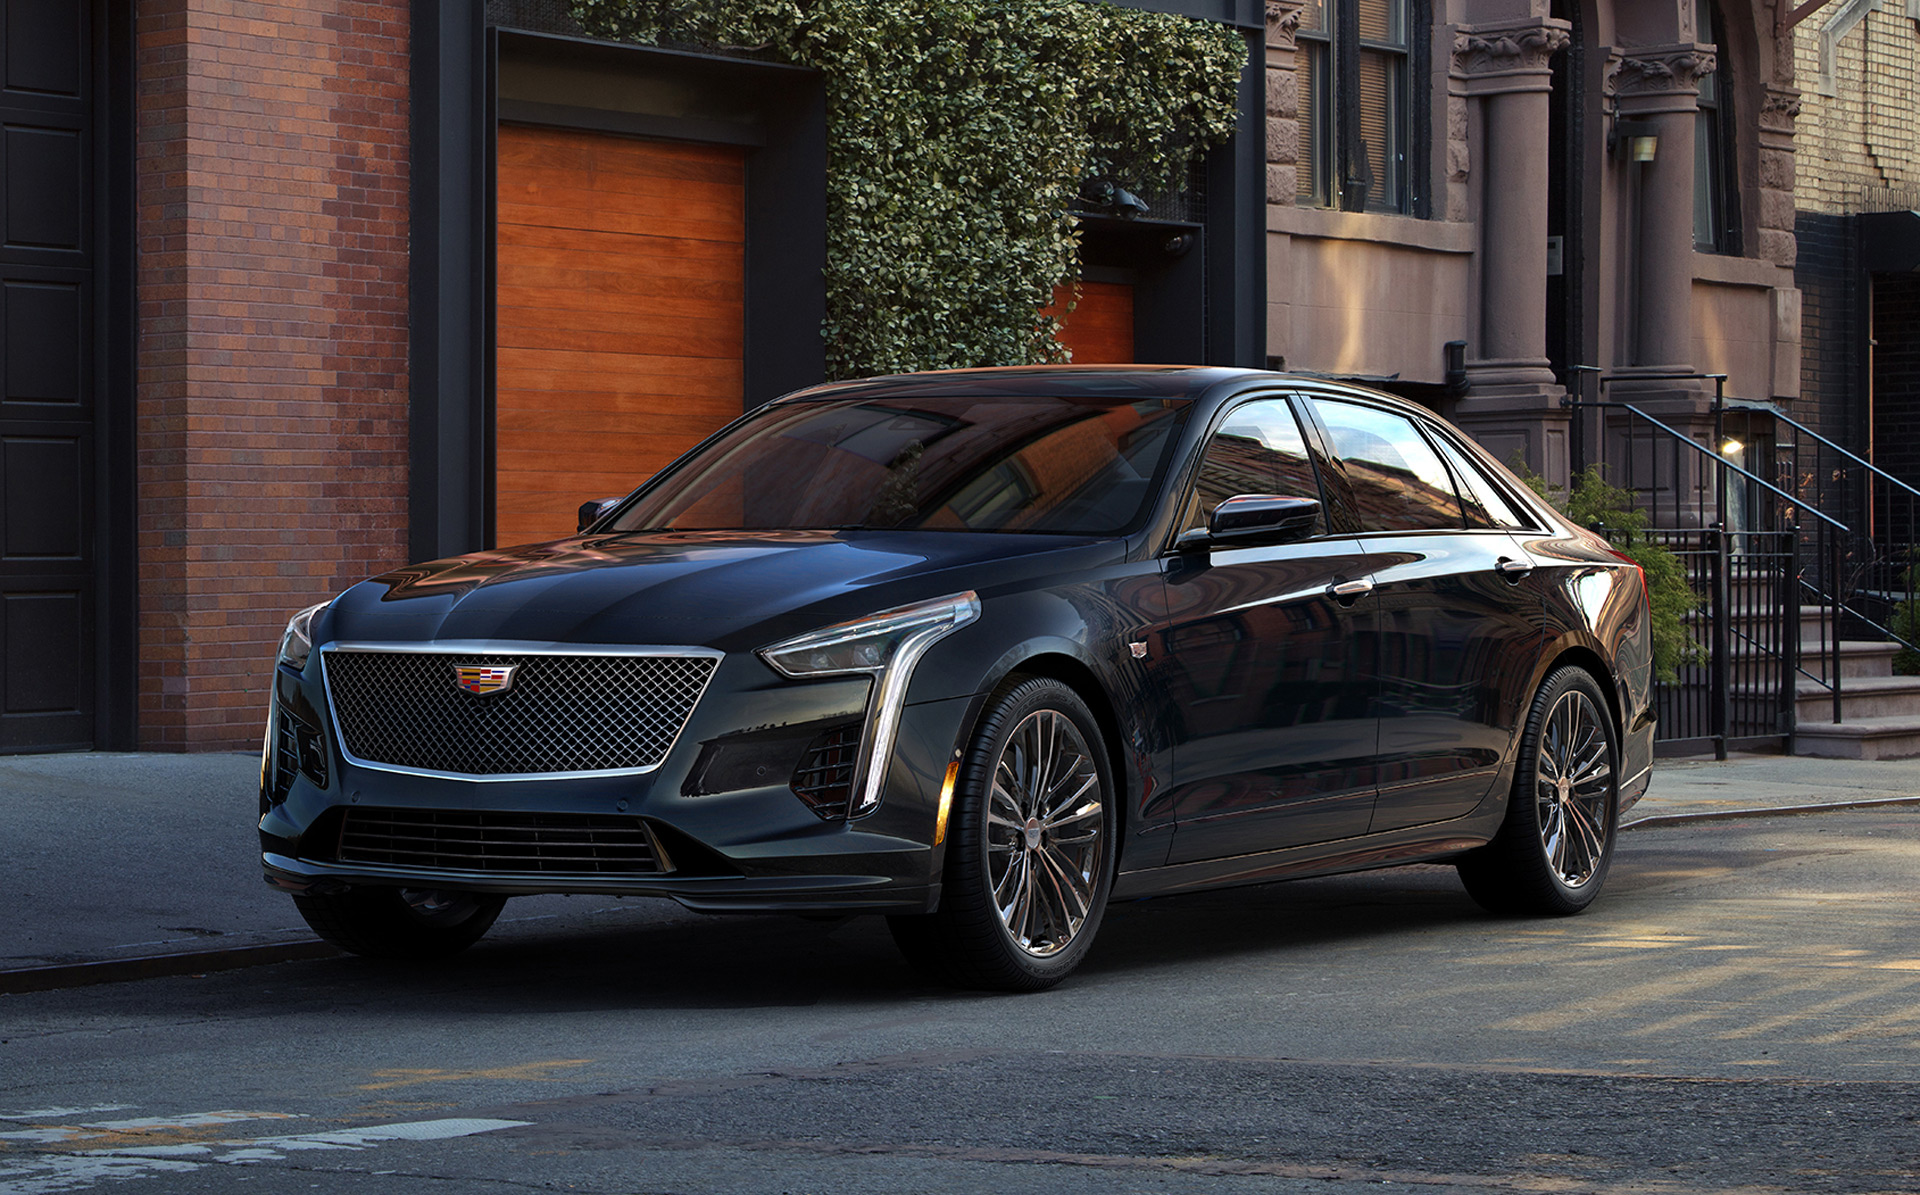 78 The Best 2020 Cadillac CT6 Pictures